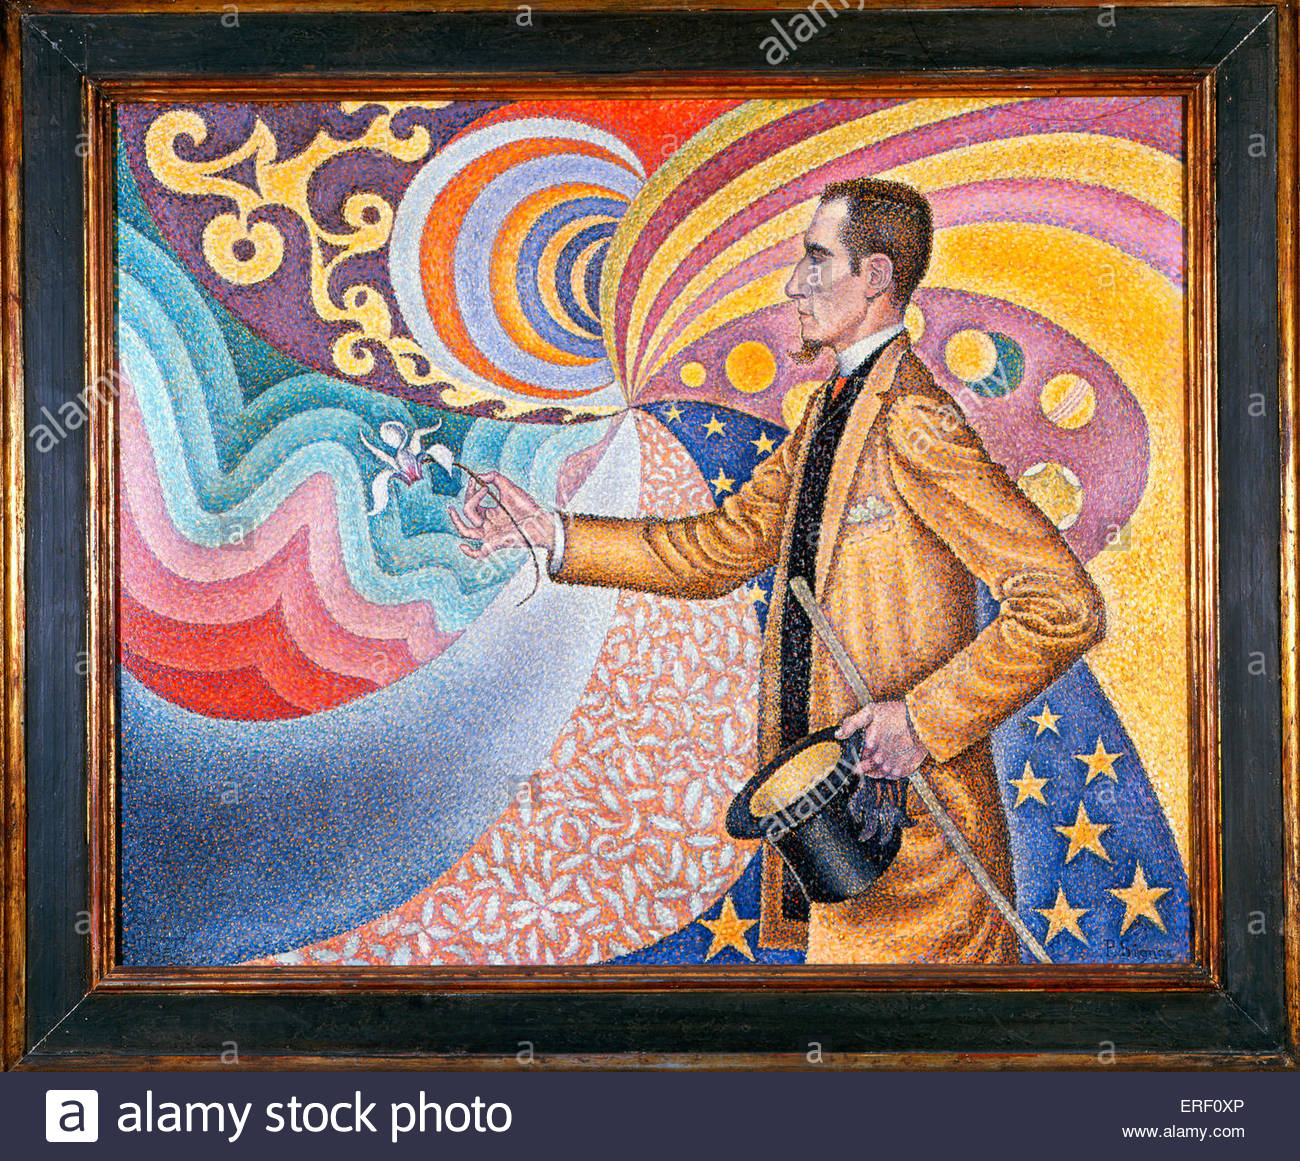 Paul Signac - painting , 'Against Enamel of a Bakground Rhythmic with Beats and Angles, Tones and Colours, Portait - Stock Image